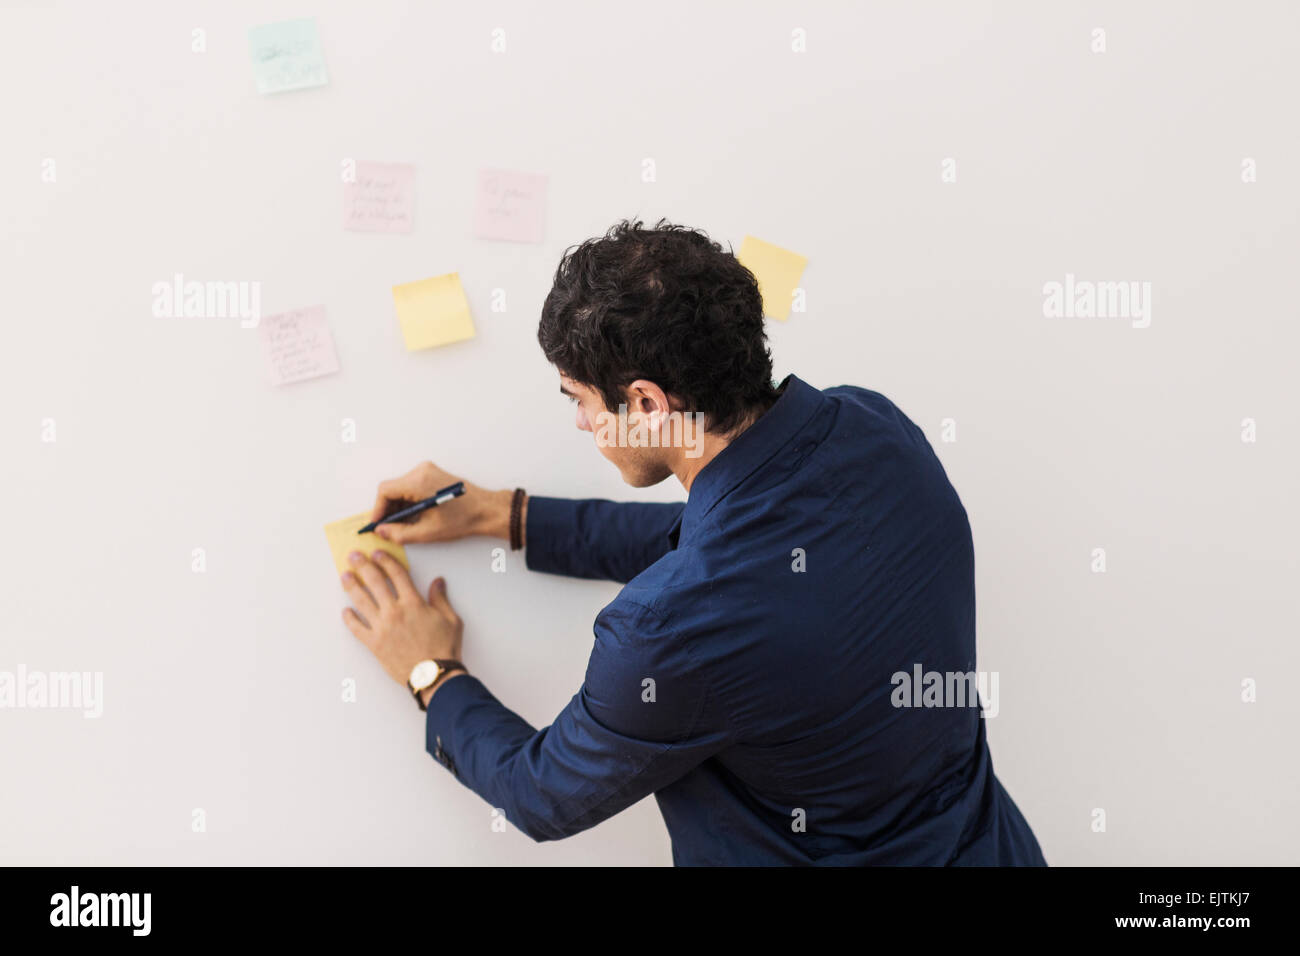 Rear view of young businessman writing reminders on adhesive note stuck on whiteboard - Stock Image